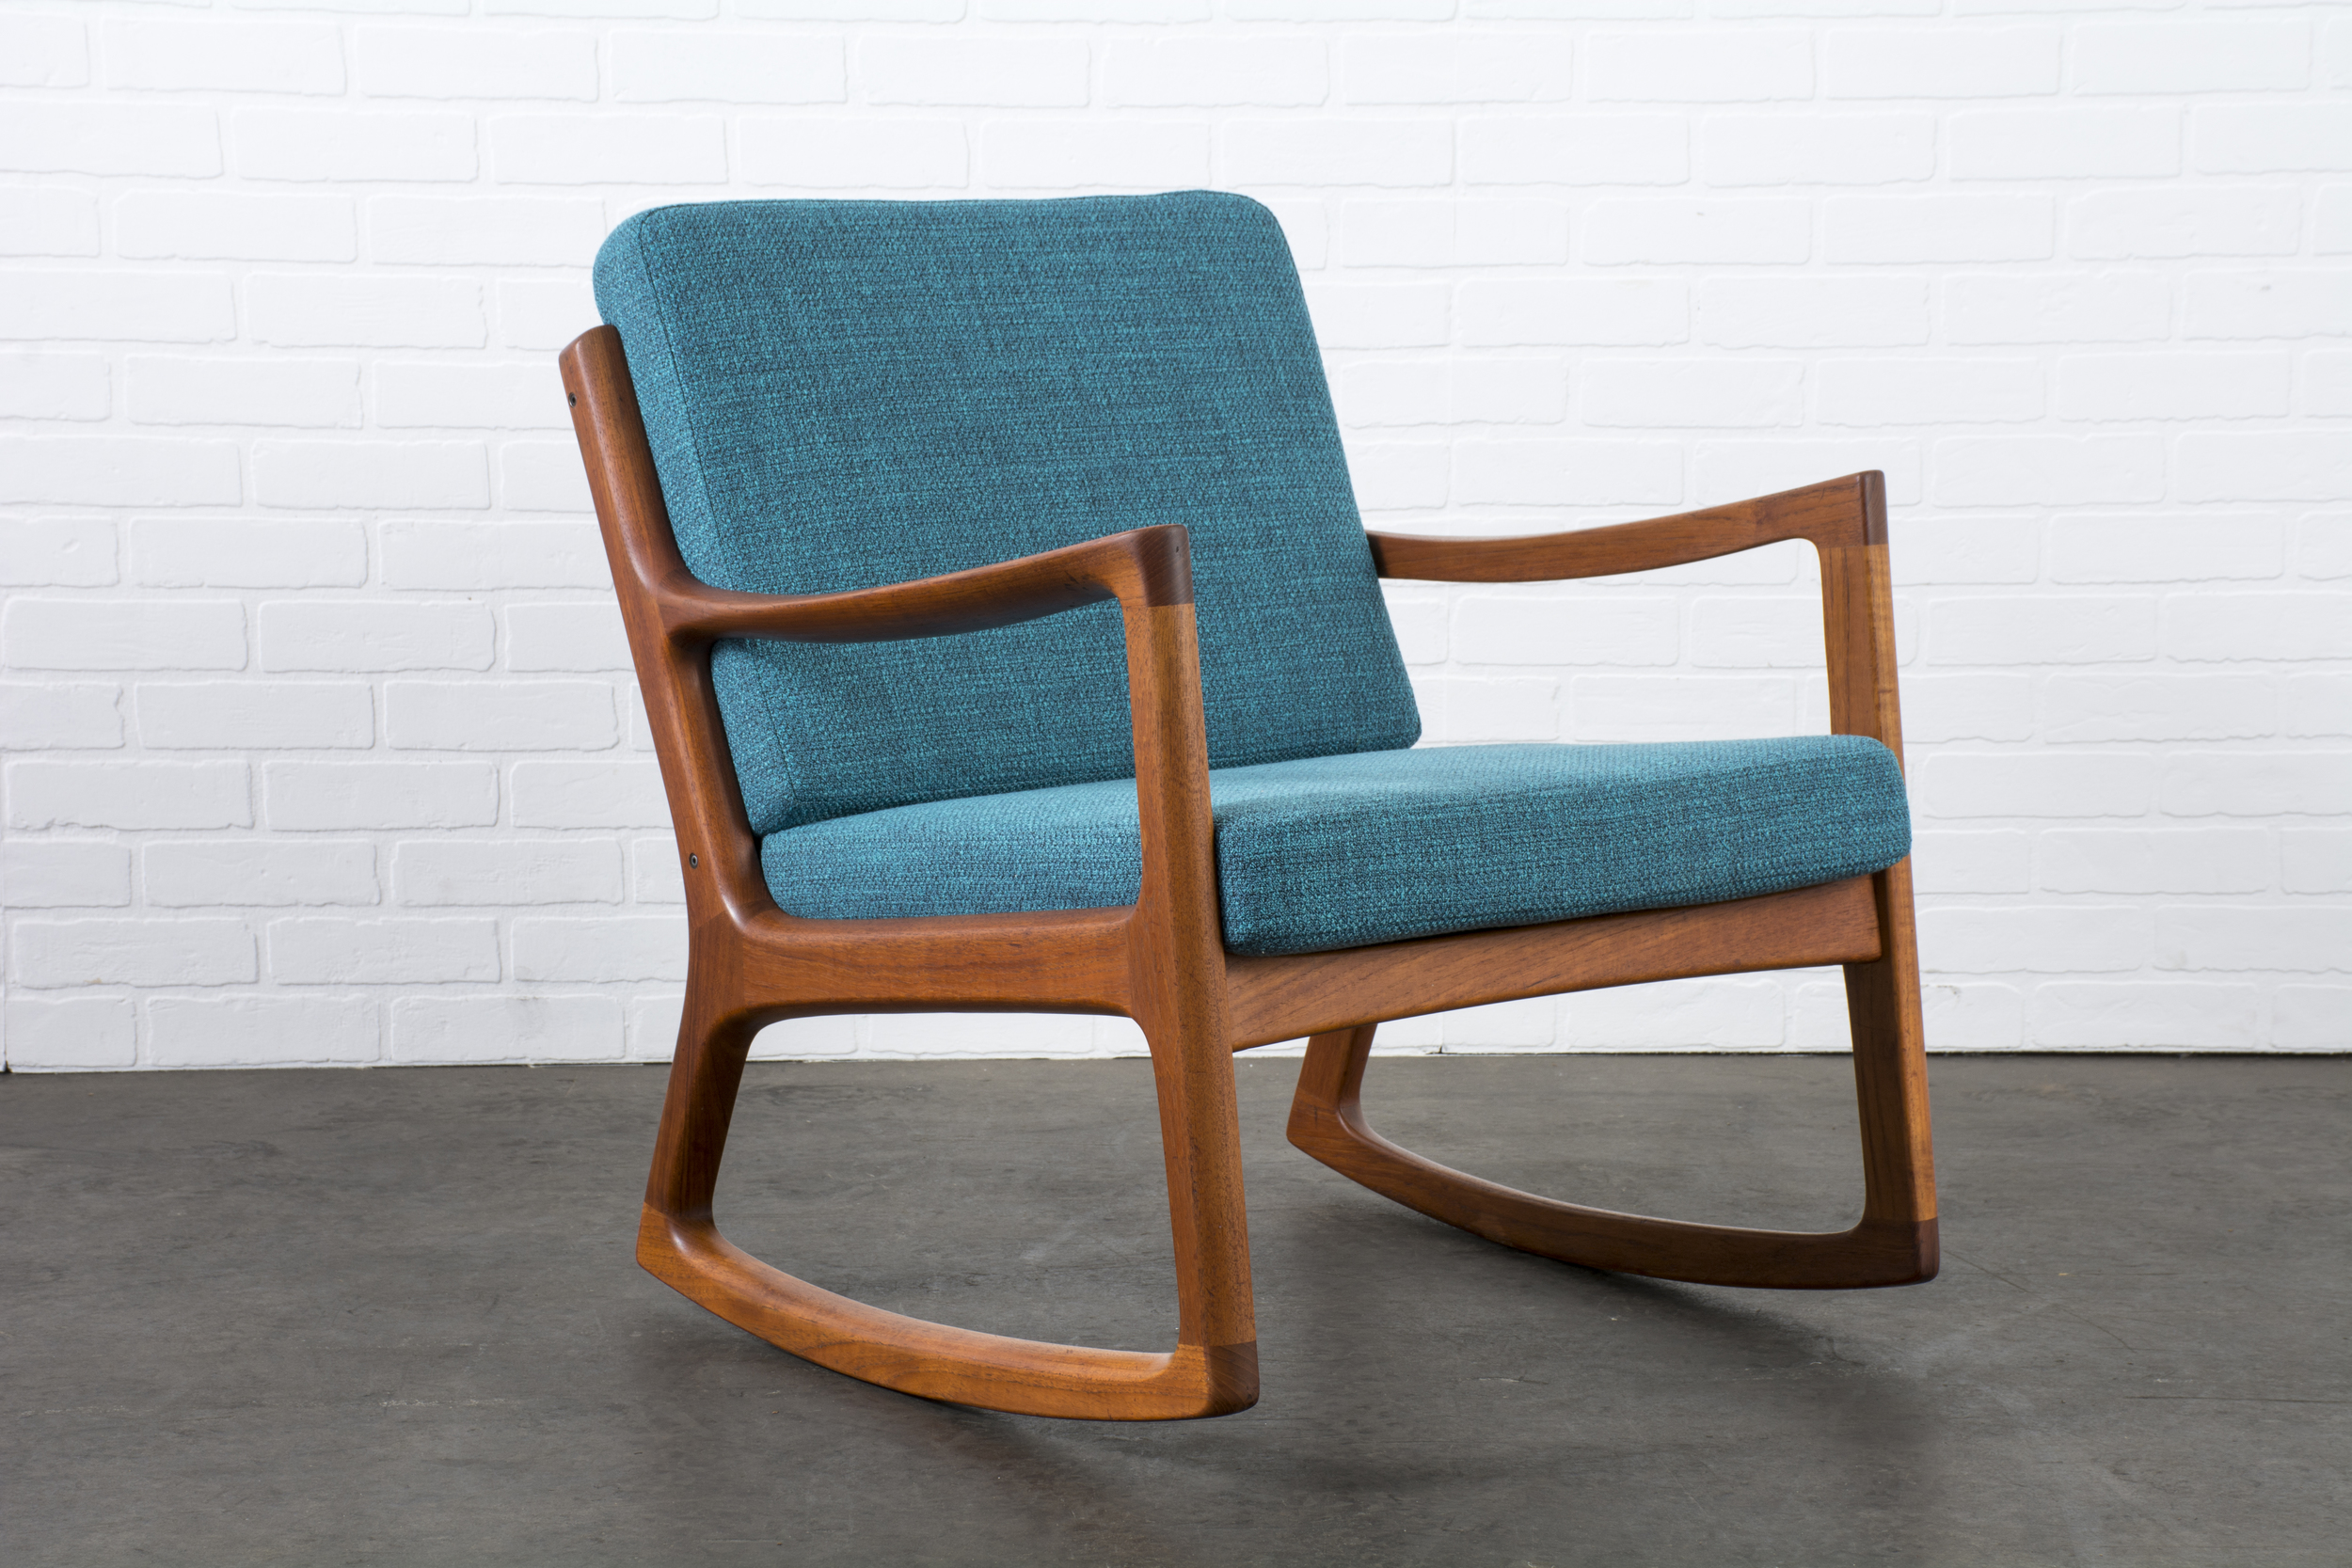 Danish Modern Teak Rocker by Ole Wanscher